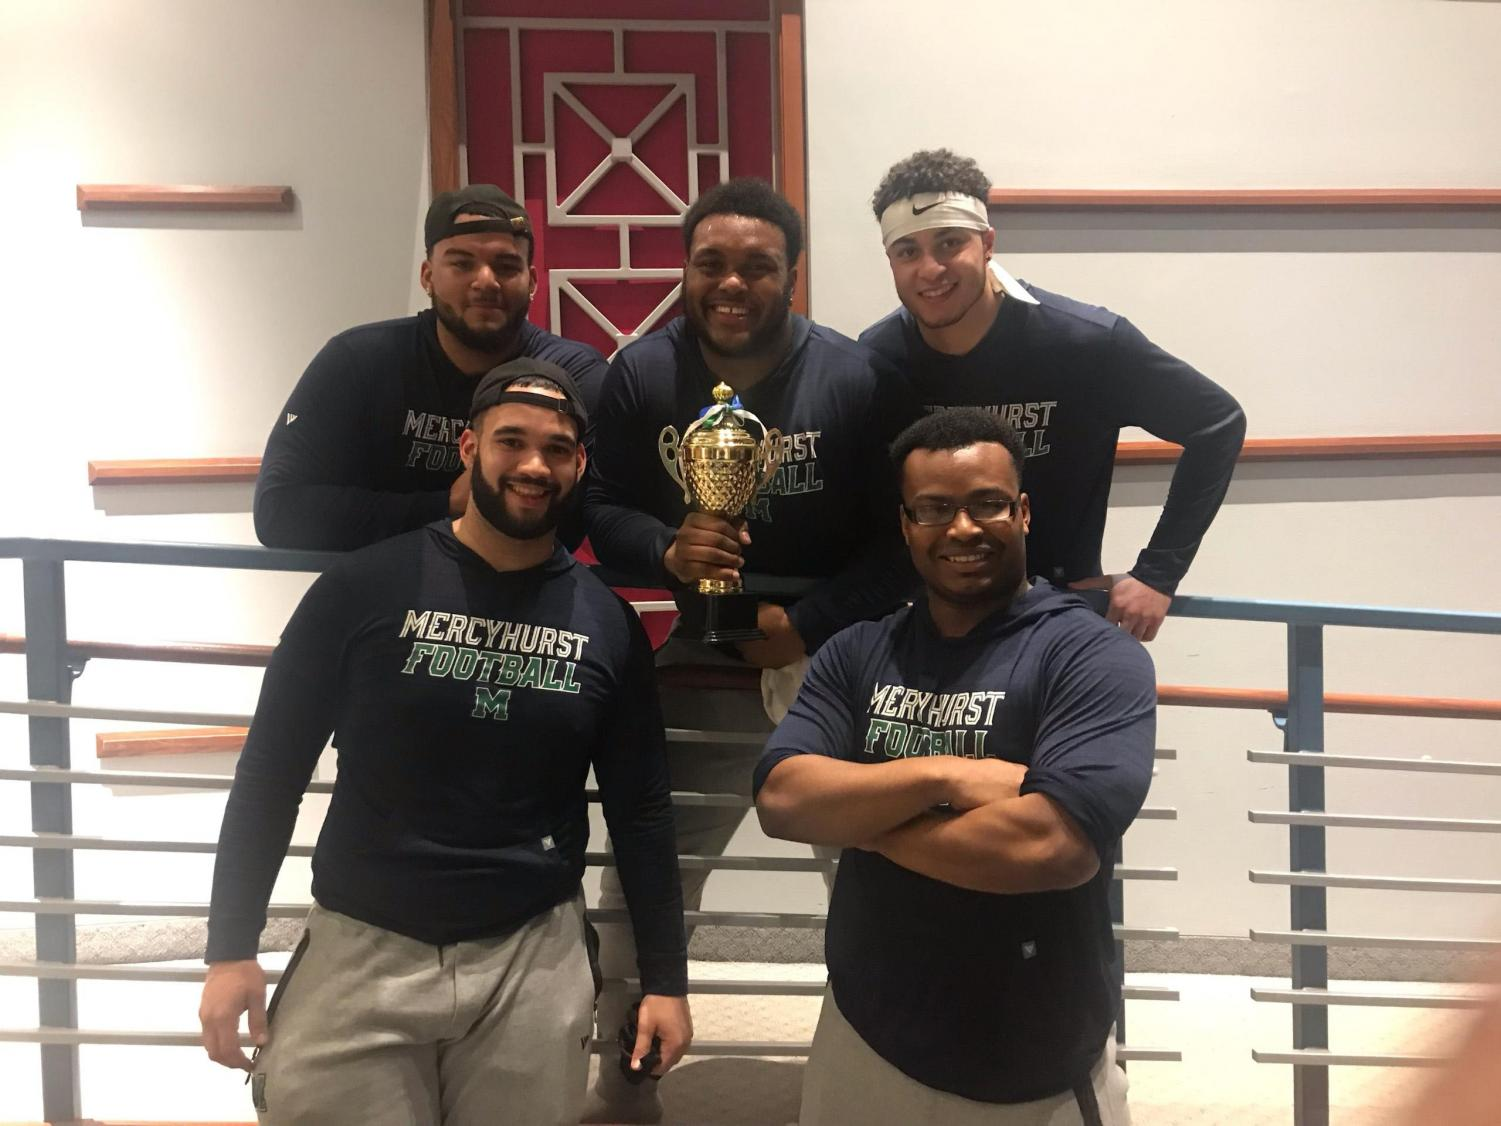 The first place winning football team posed for a photo afterwards.  From left to right, front to back: Freddy Pantaleon, Donny Bryant III, Ayron Thompson, JaKarri Buckner and Qadry Ismail.